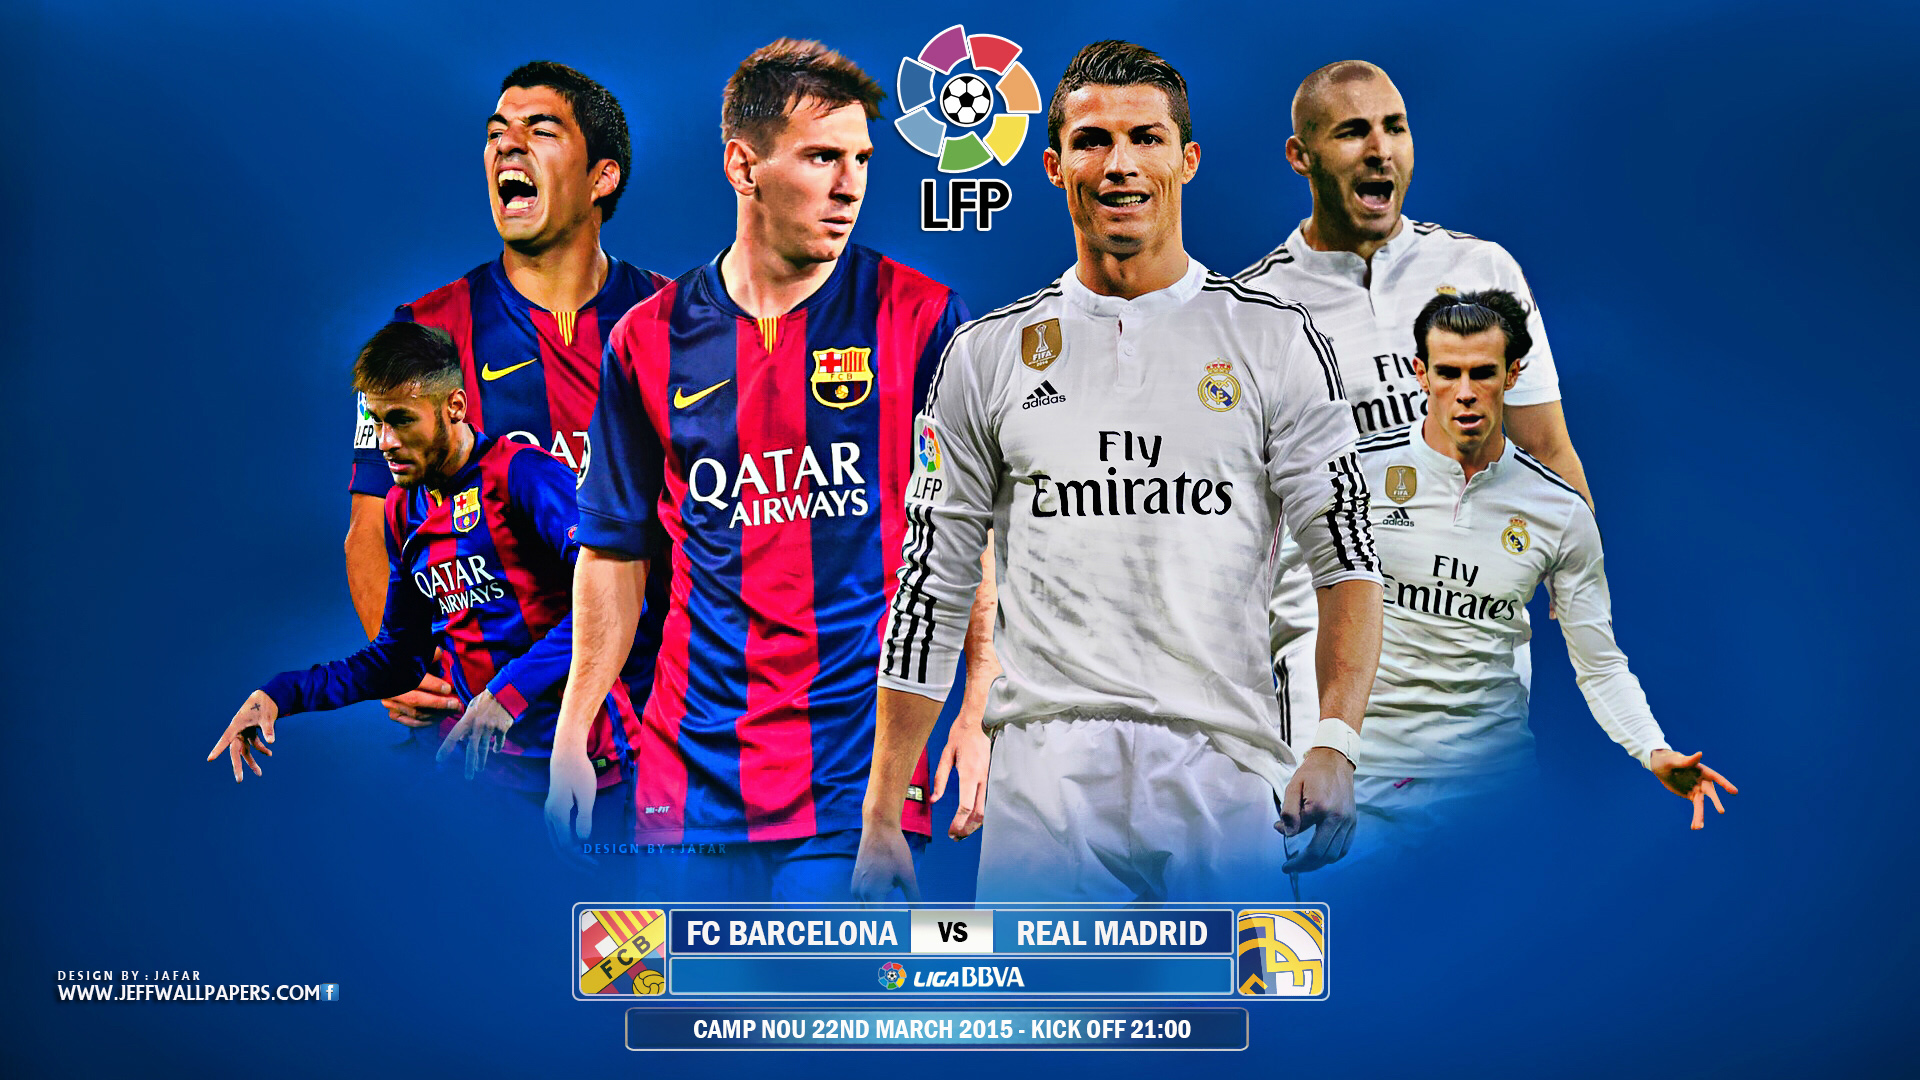 FC Barcelona vs Real Madrid 2014 2015 Primera Division HD Wallpaper 1920x1080